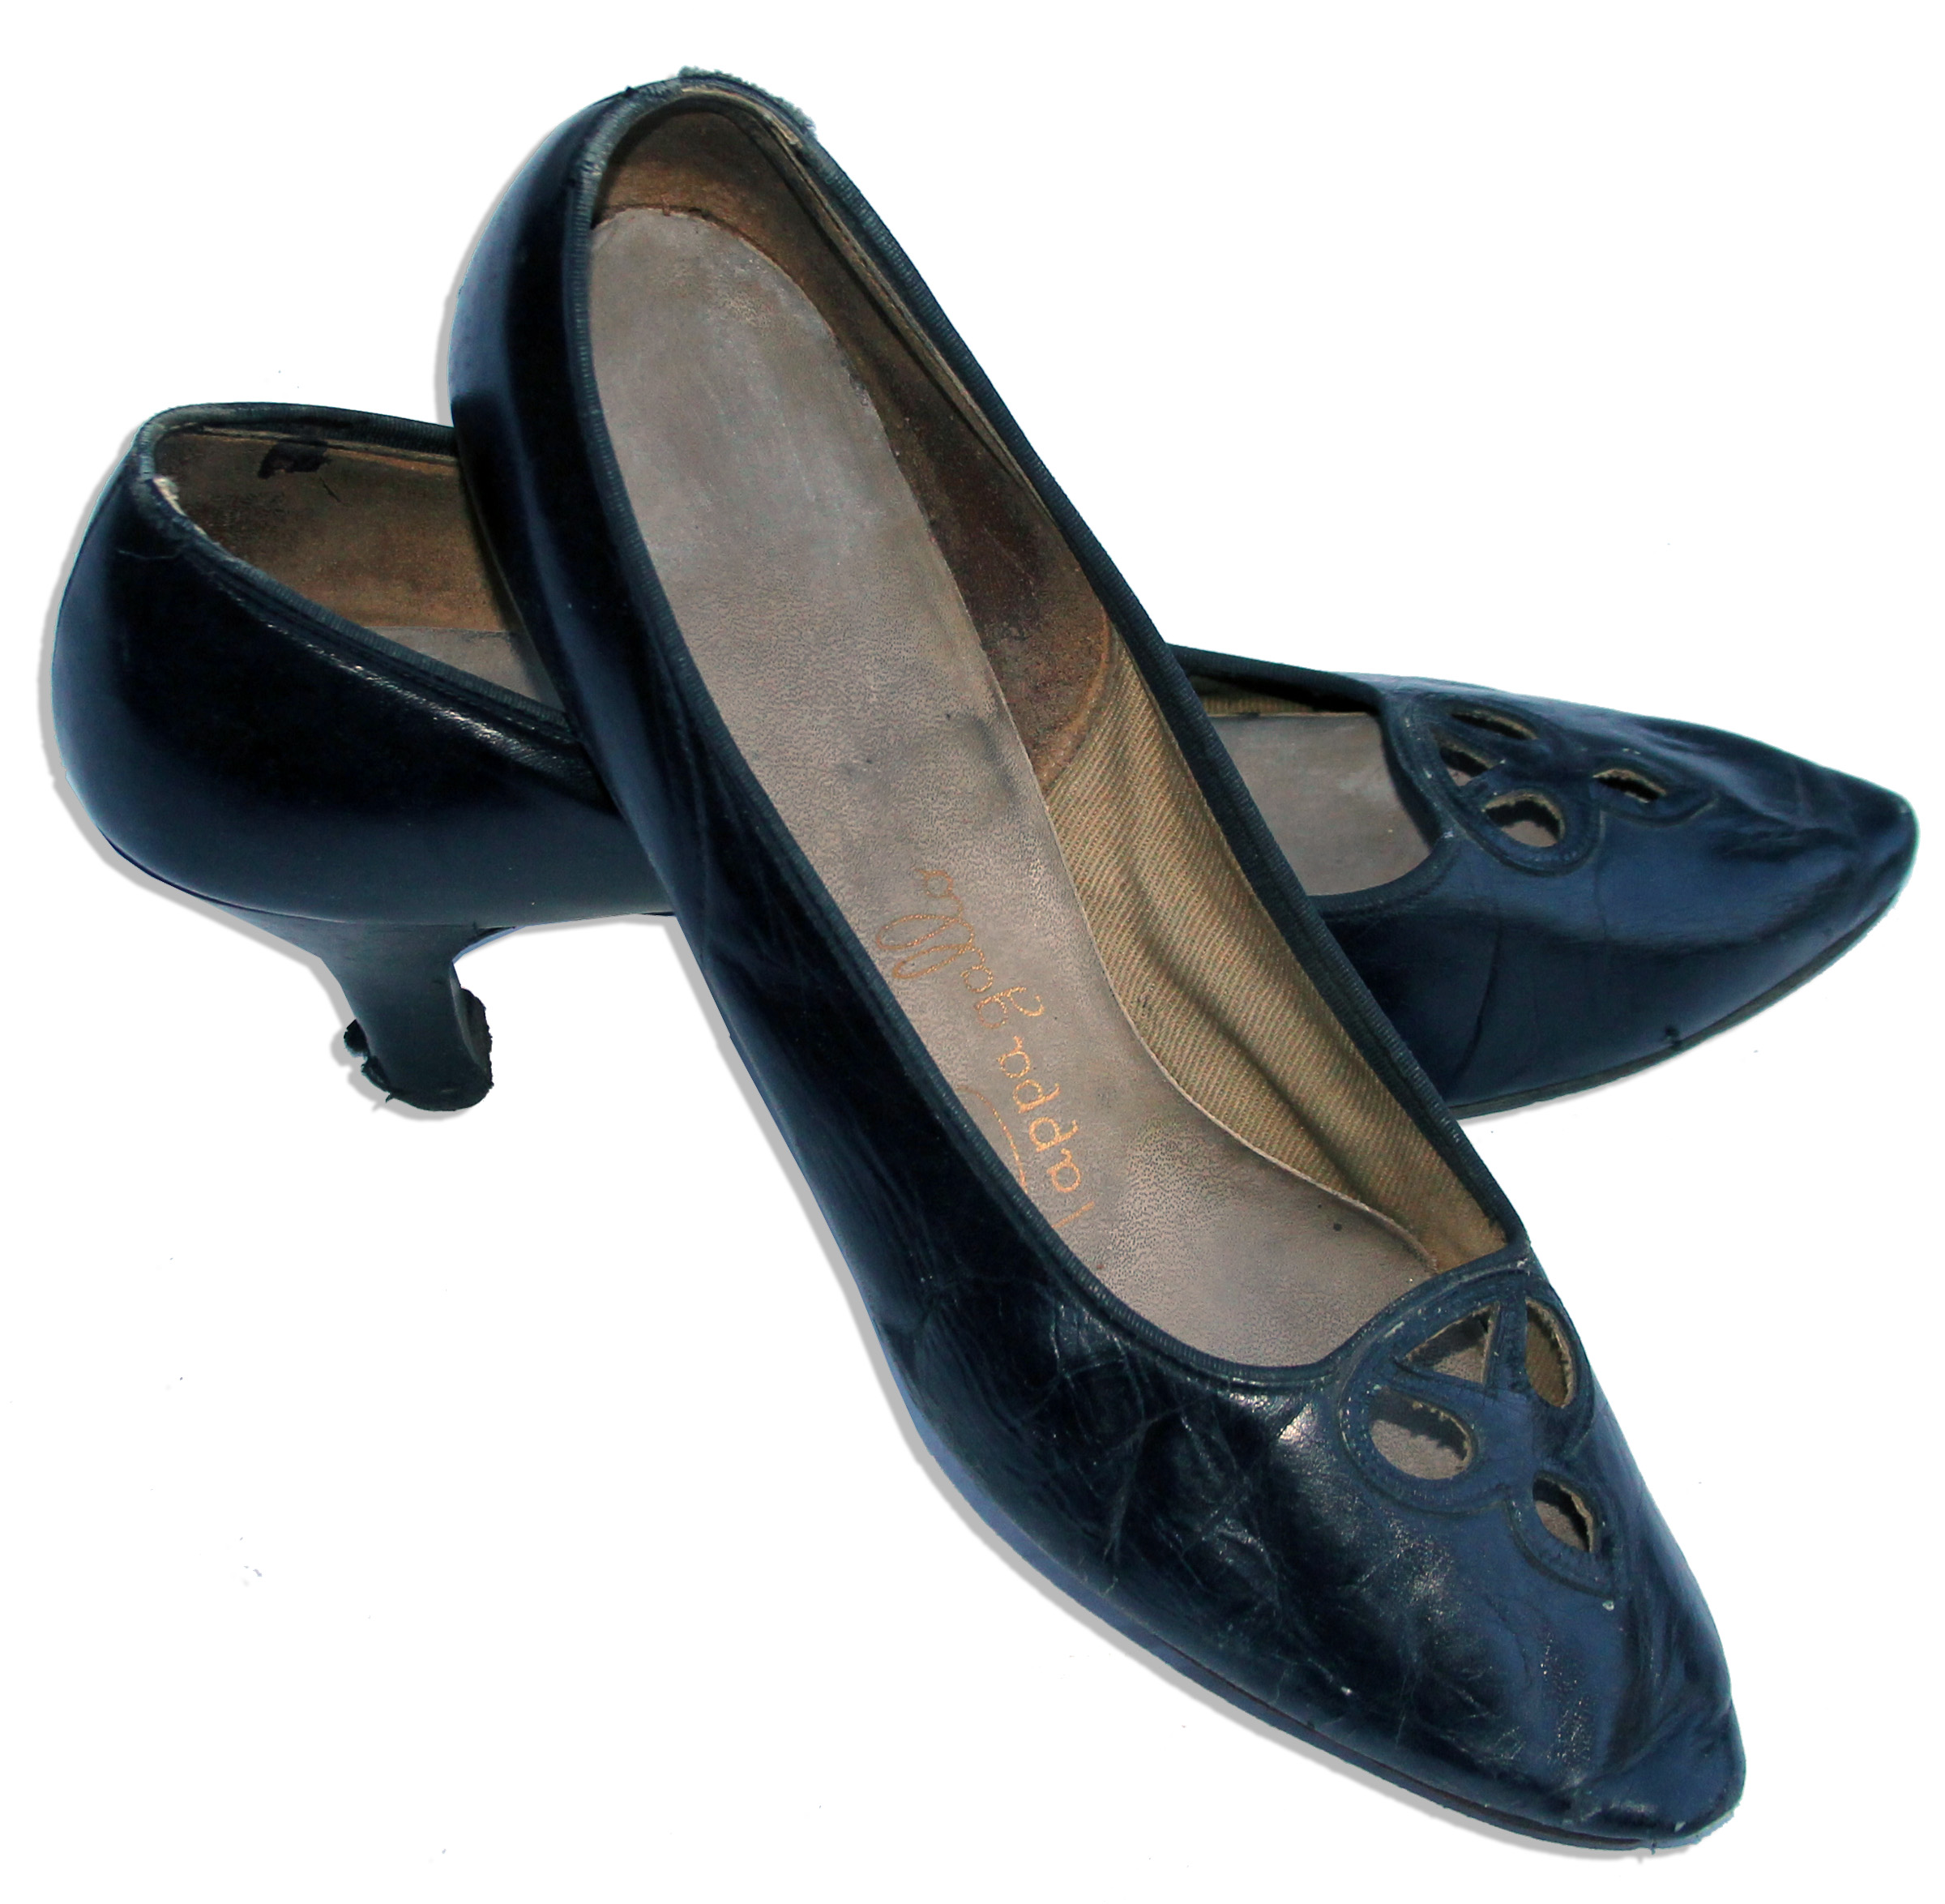 lot detail jackie kennedy personally owned worn shoes